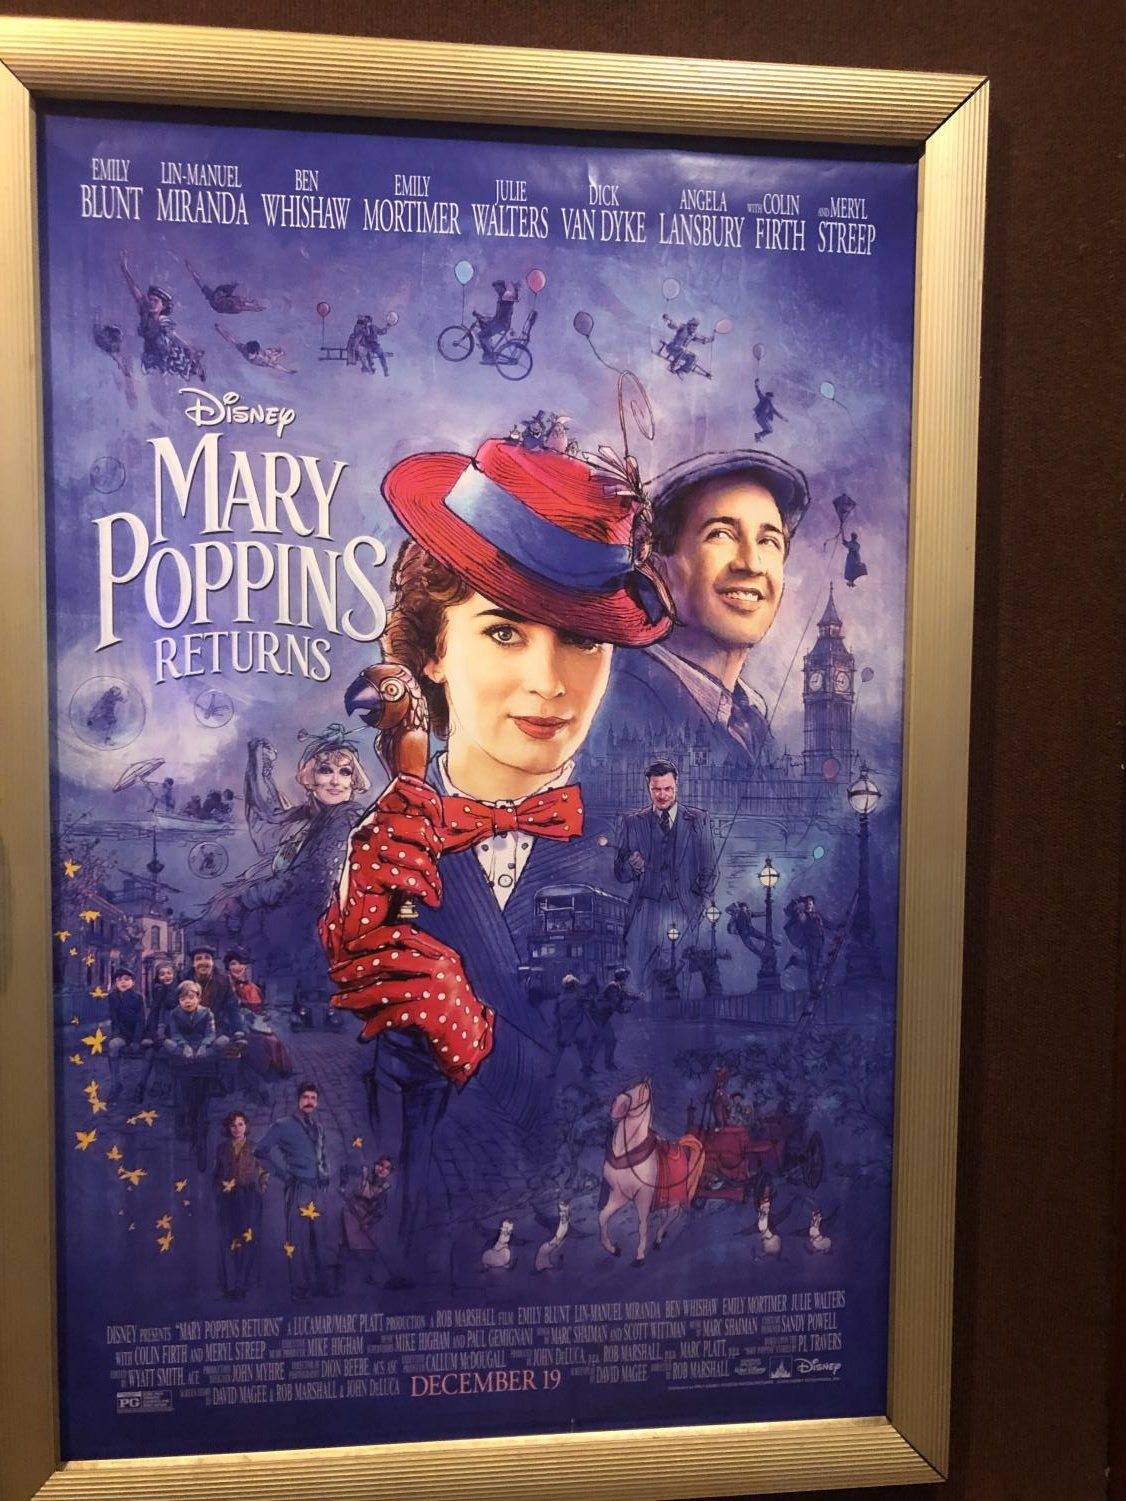 Mary Poppins Returns in now in theaters. If you're looking for maximum entertainment this holiday break, Mary Poppins is always there to help. She's